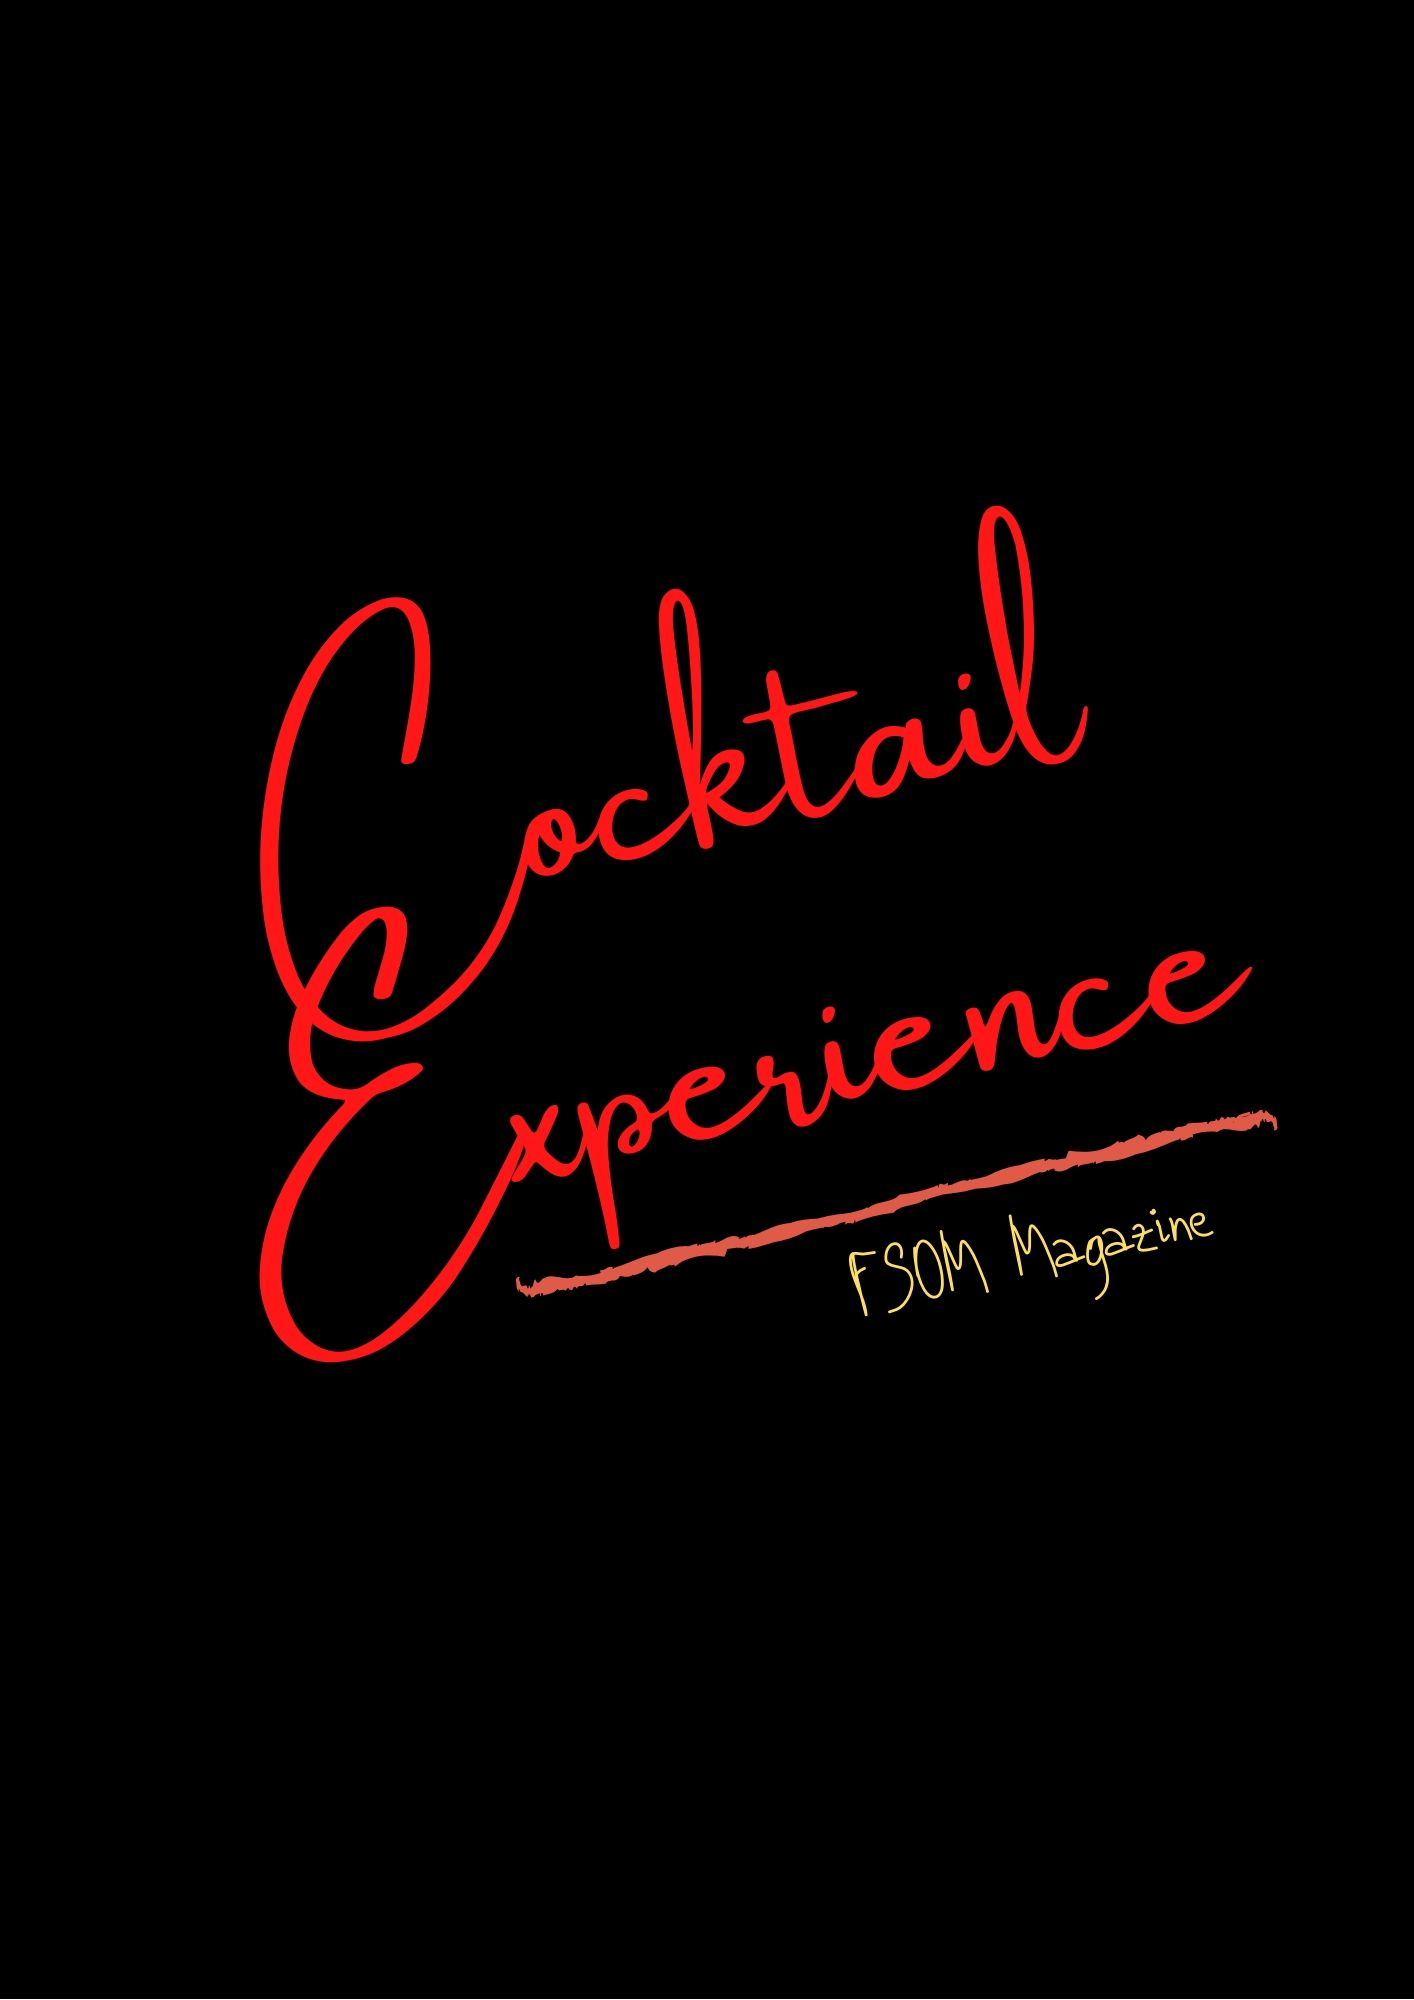 Let's shake things up! Cocktail Experience